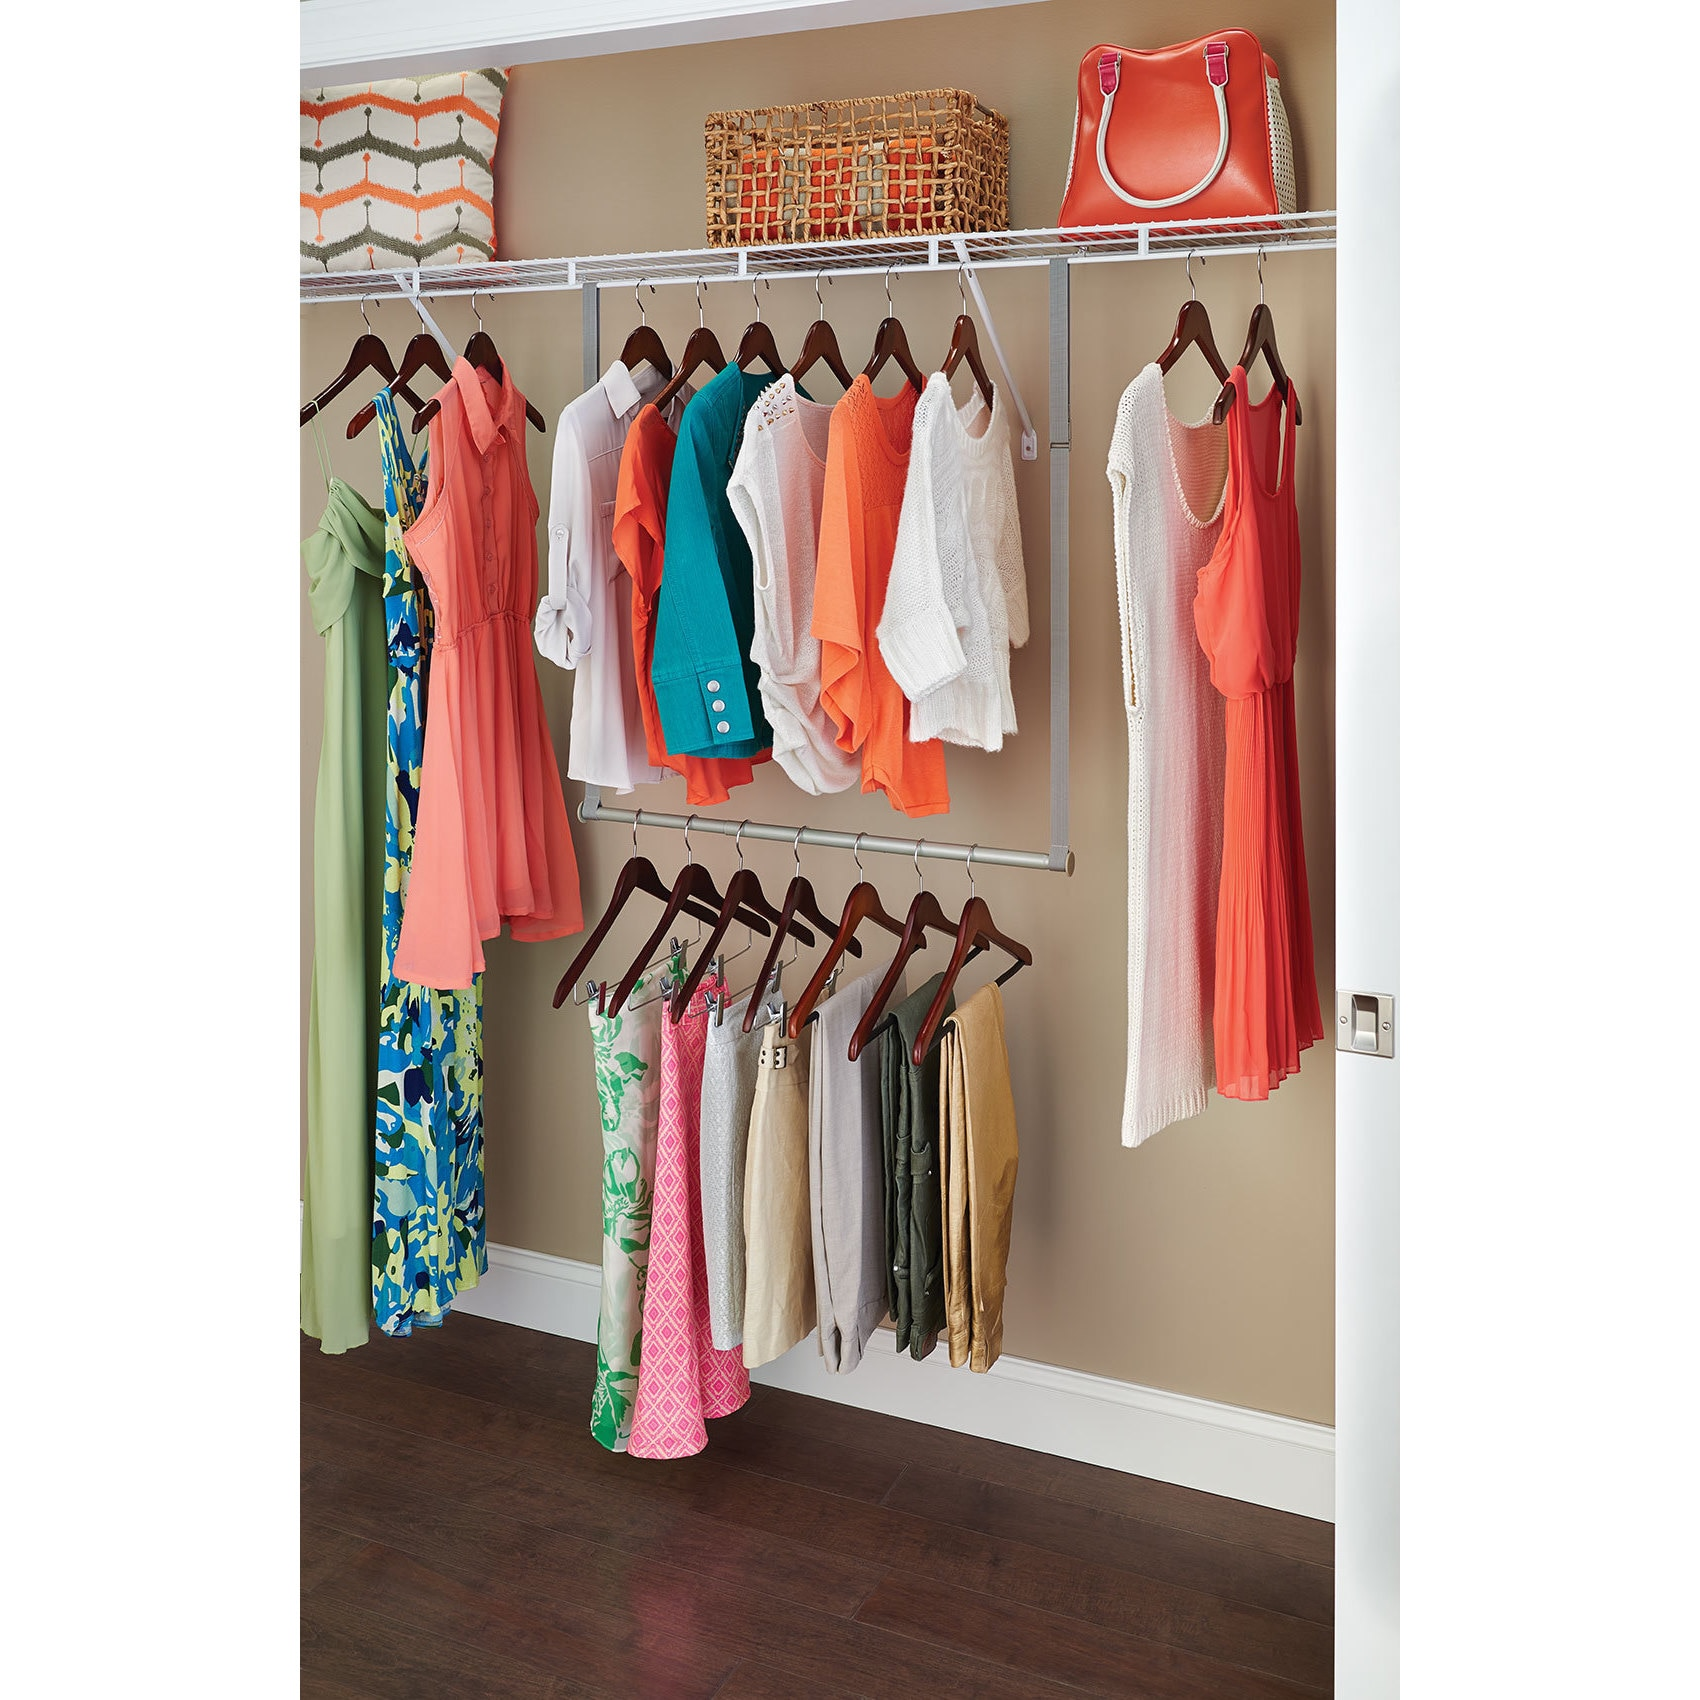 Image result for hanging closet rack double